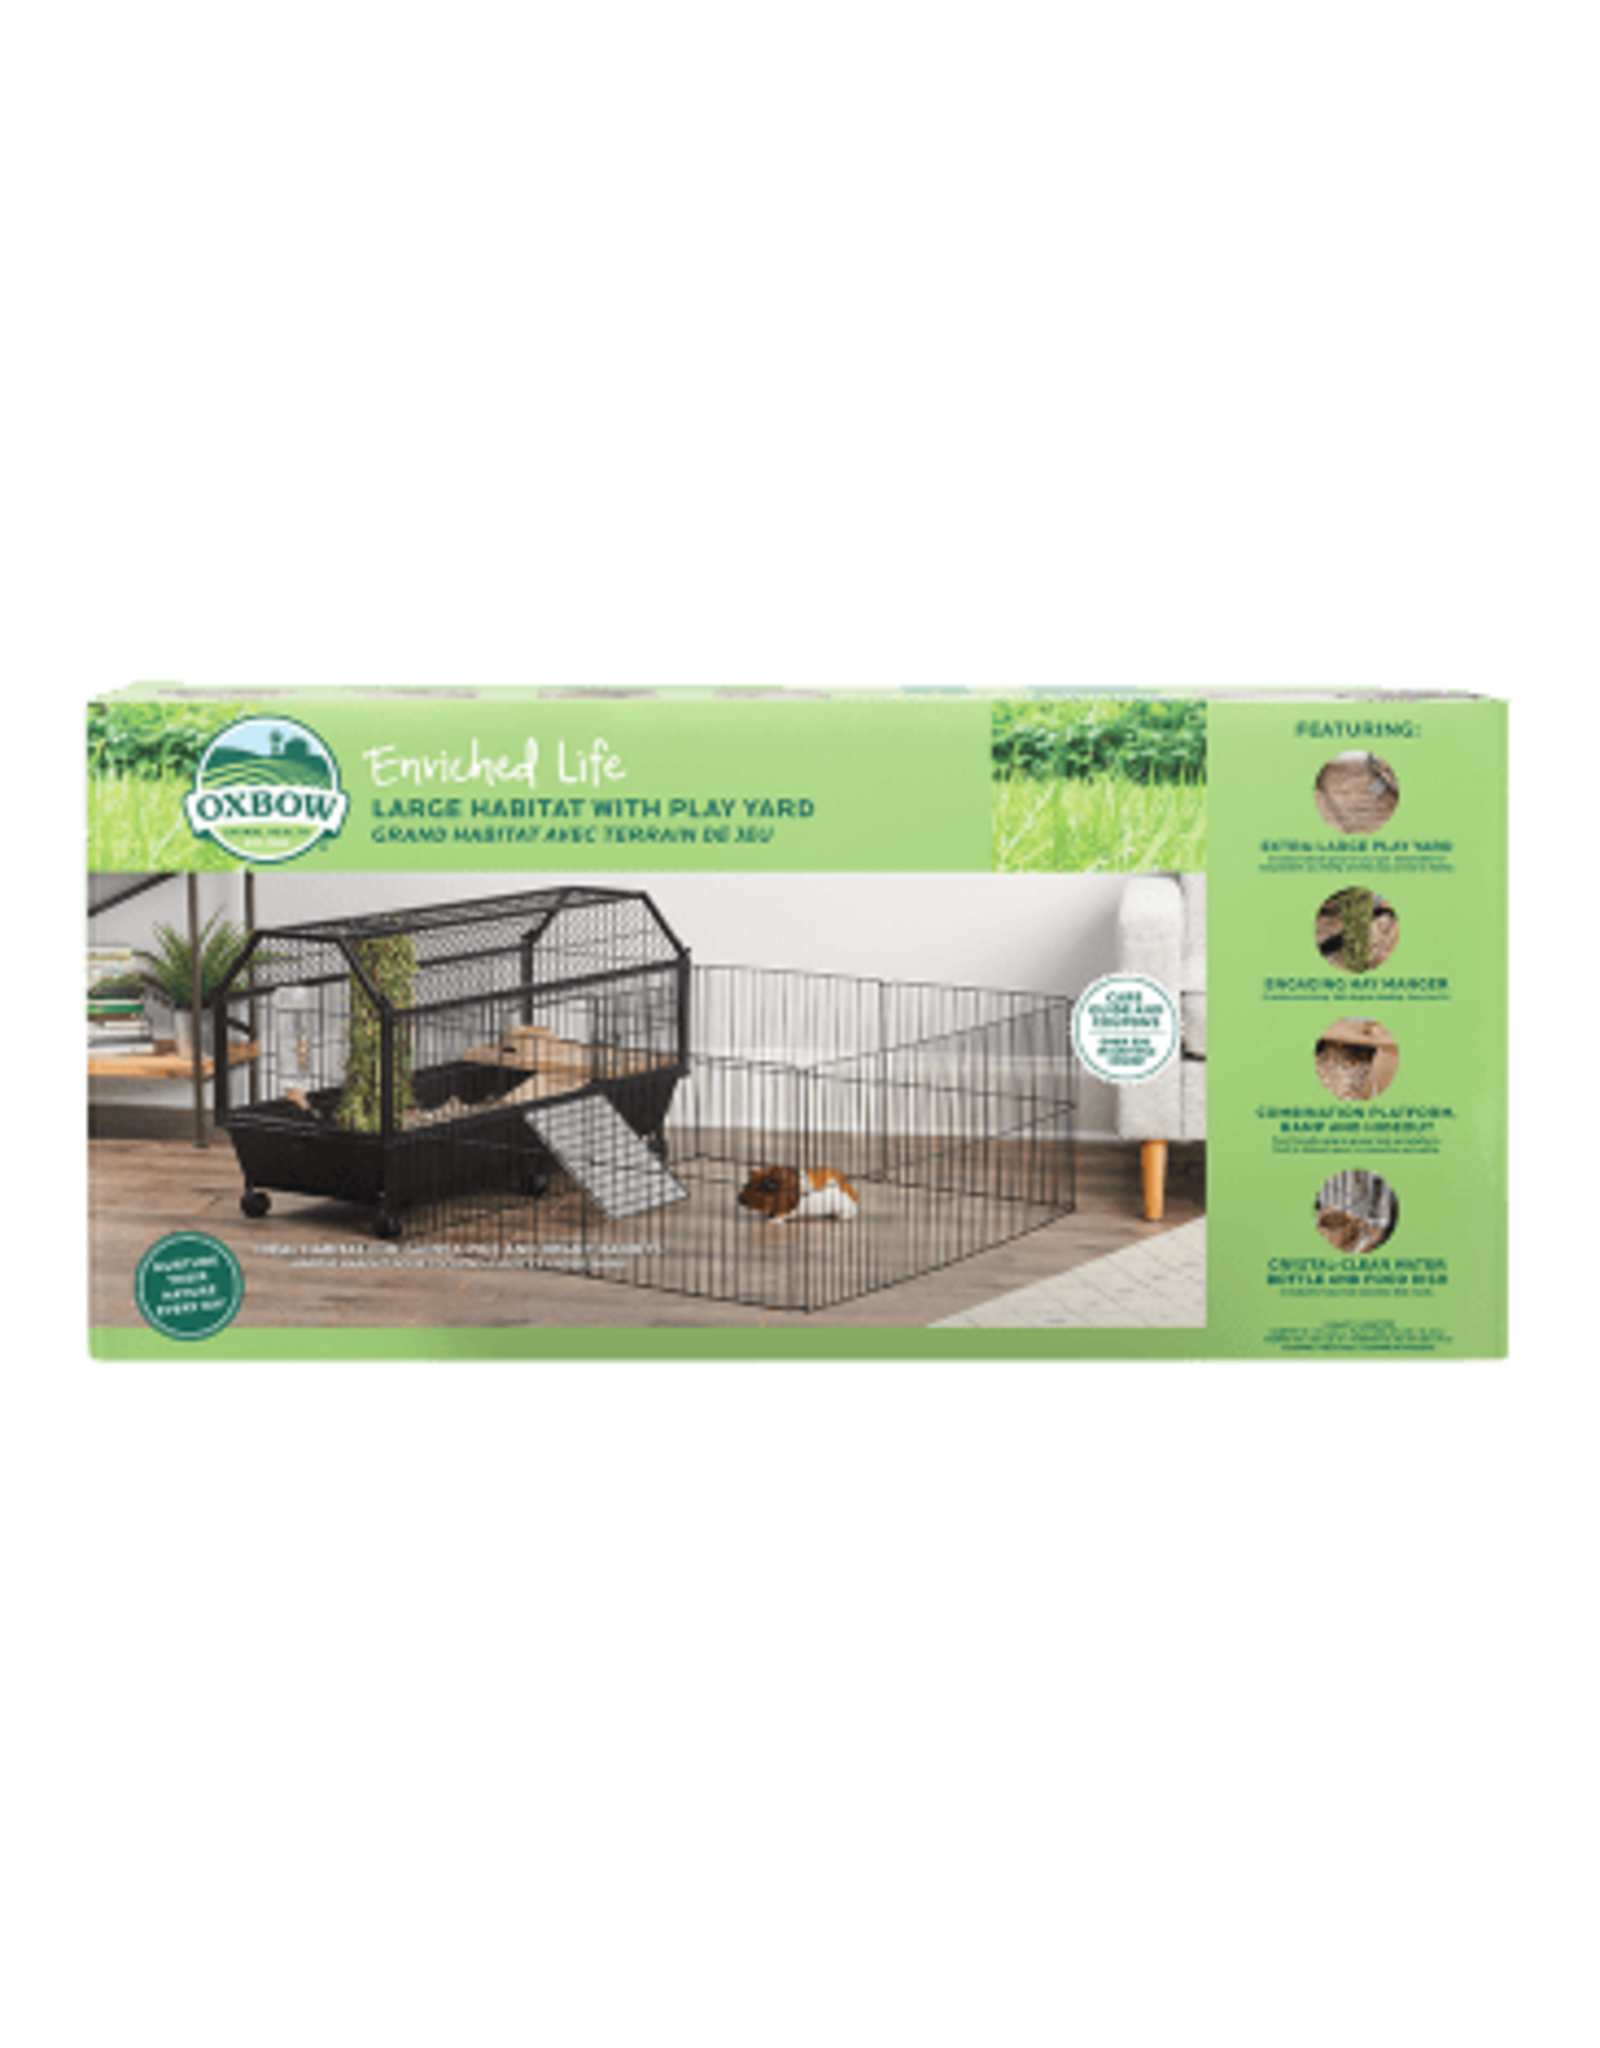 Oxbow OXBOW Enriched Life Habitat with Play Yard Large